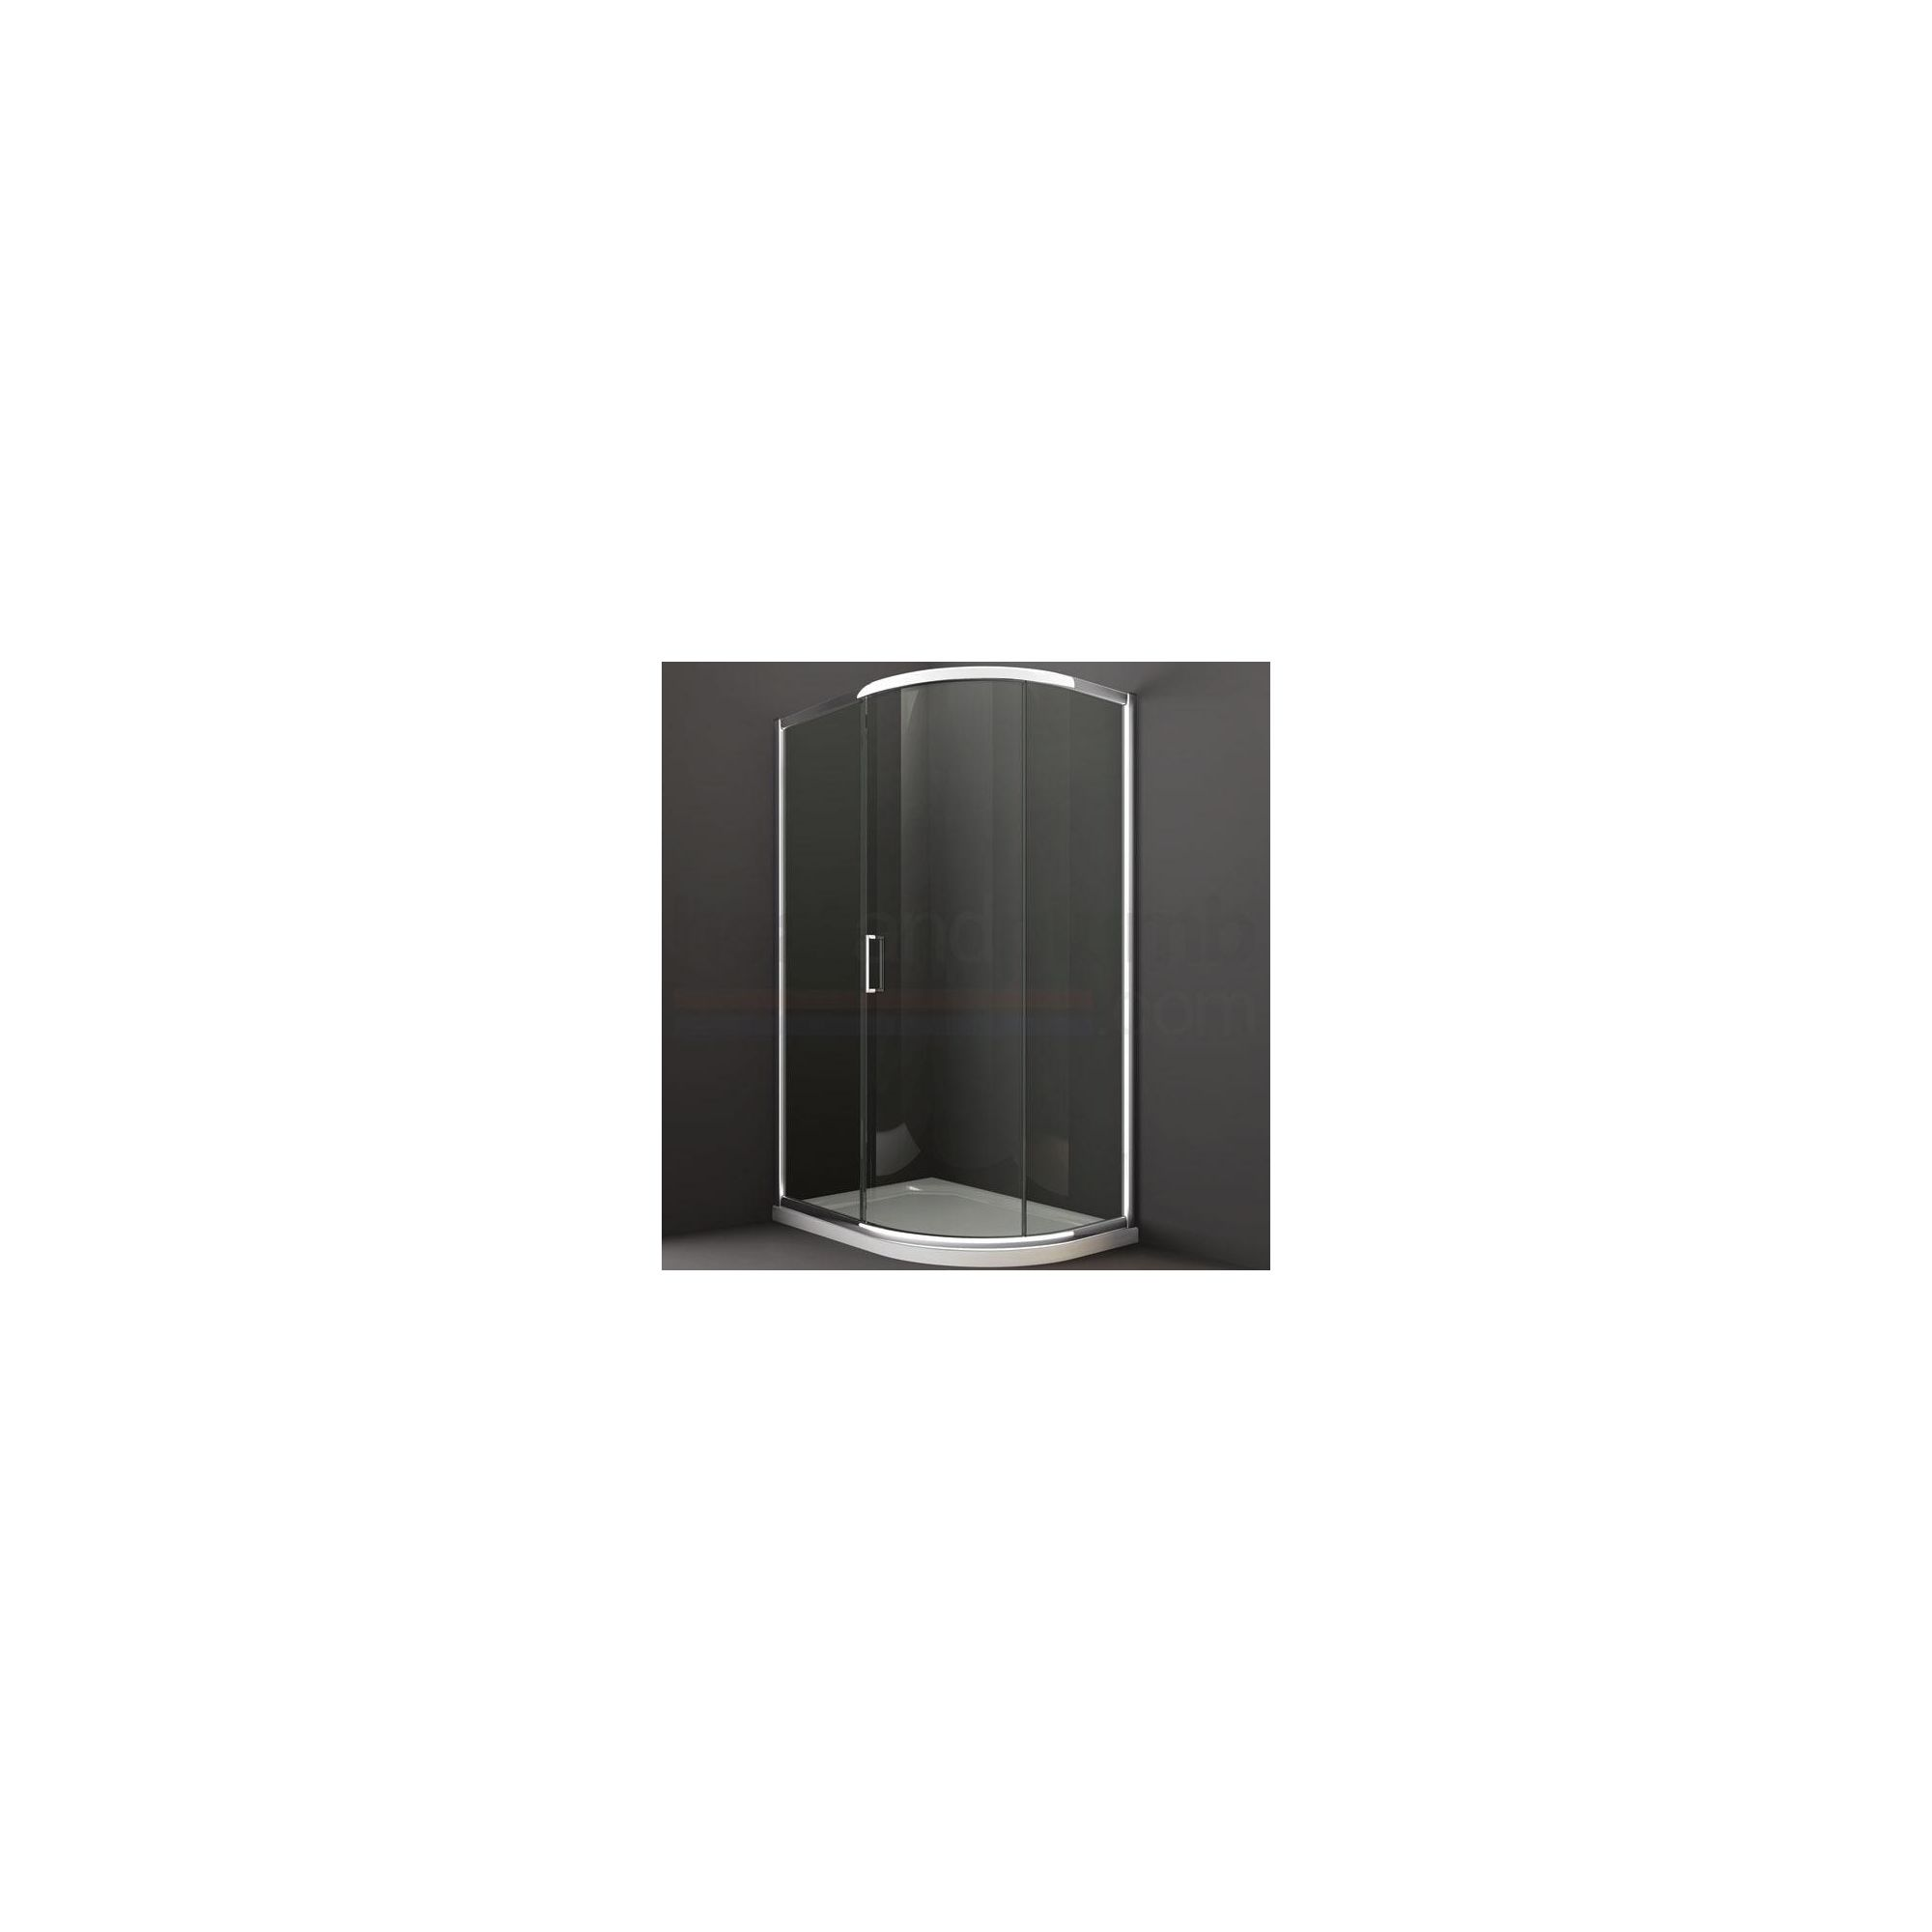 Merlyn Series 8 Sliding 1 Door Offset Quadrant Shower Enclosure, 900mm x 760mm, Low Profile Tray, 8mm Glass at Tesco Direct